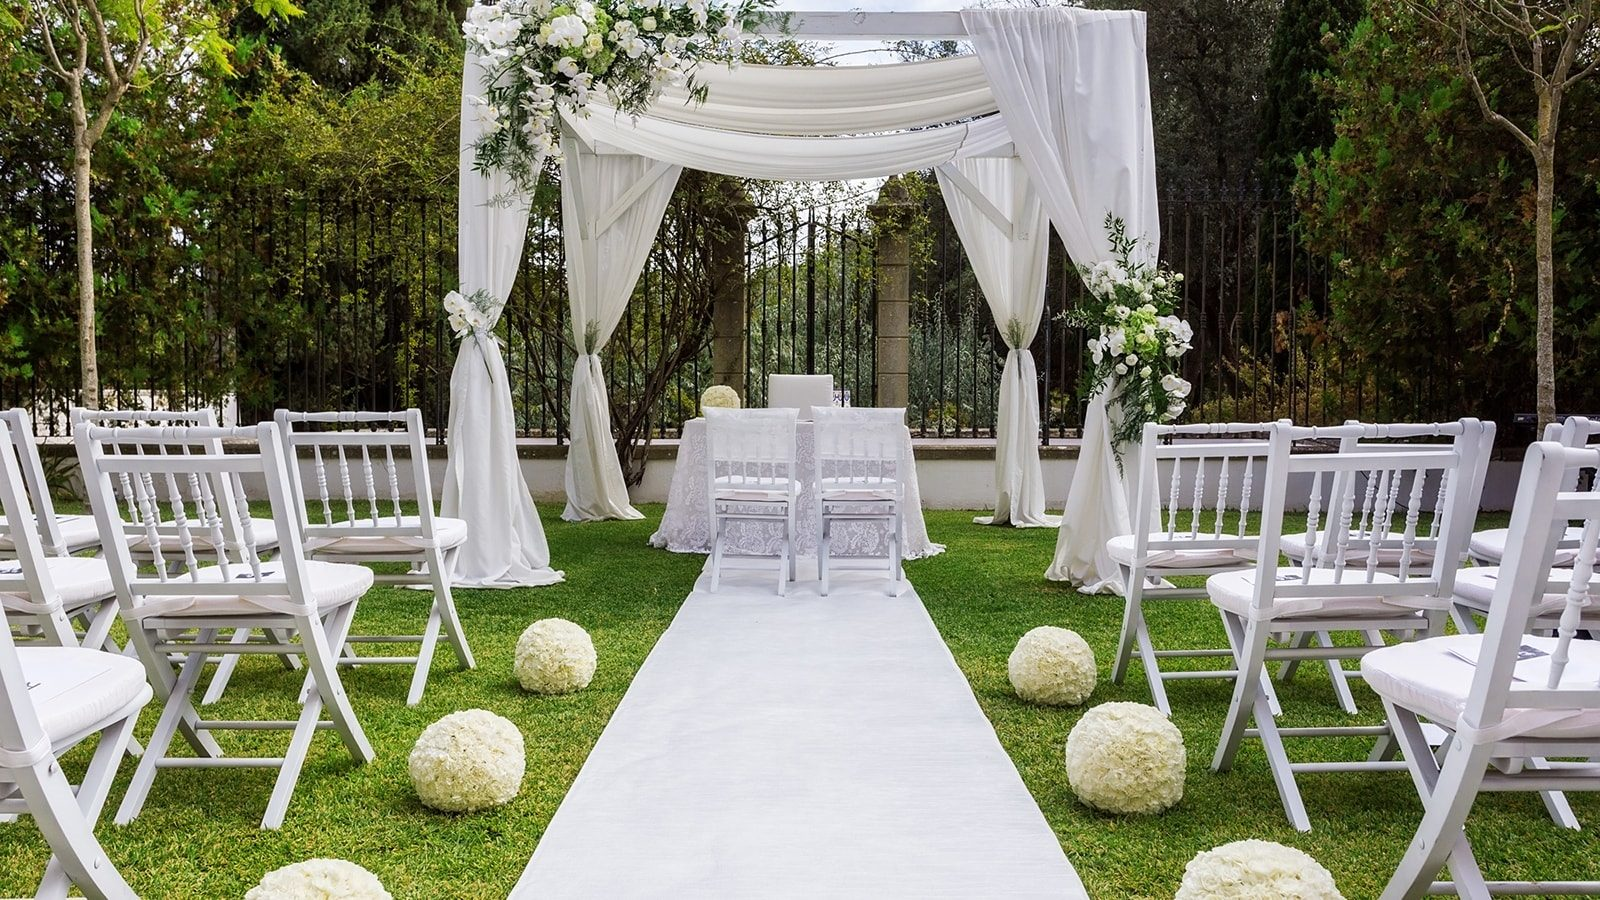 3 Design Tips for Building a Wedding Venue